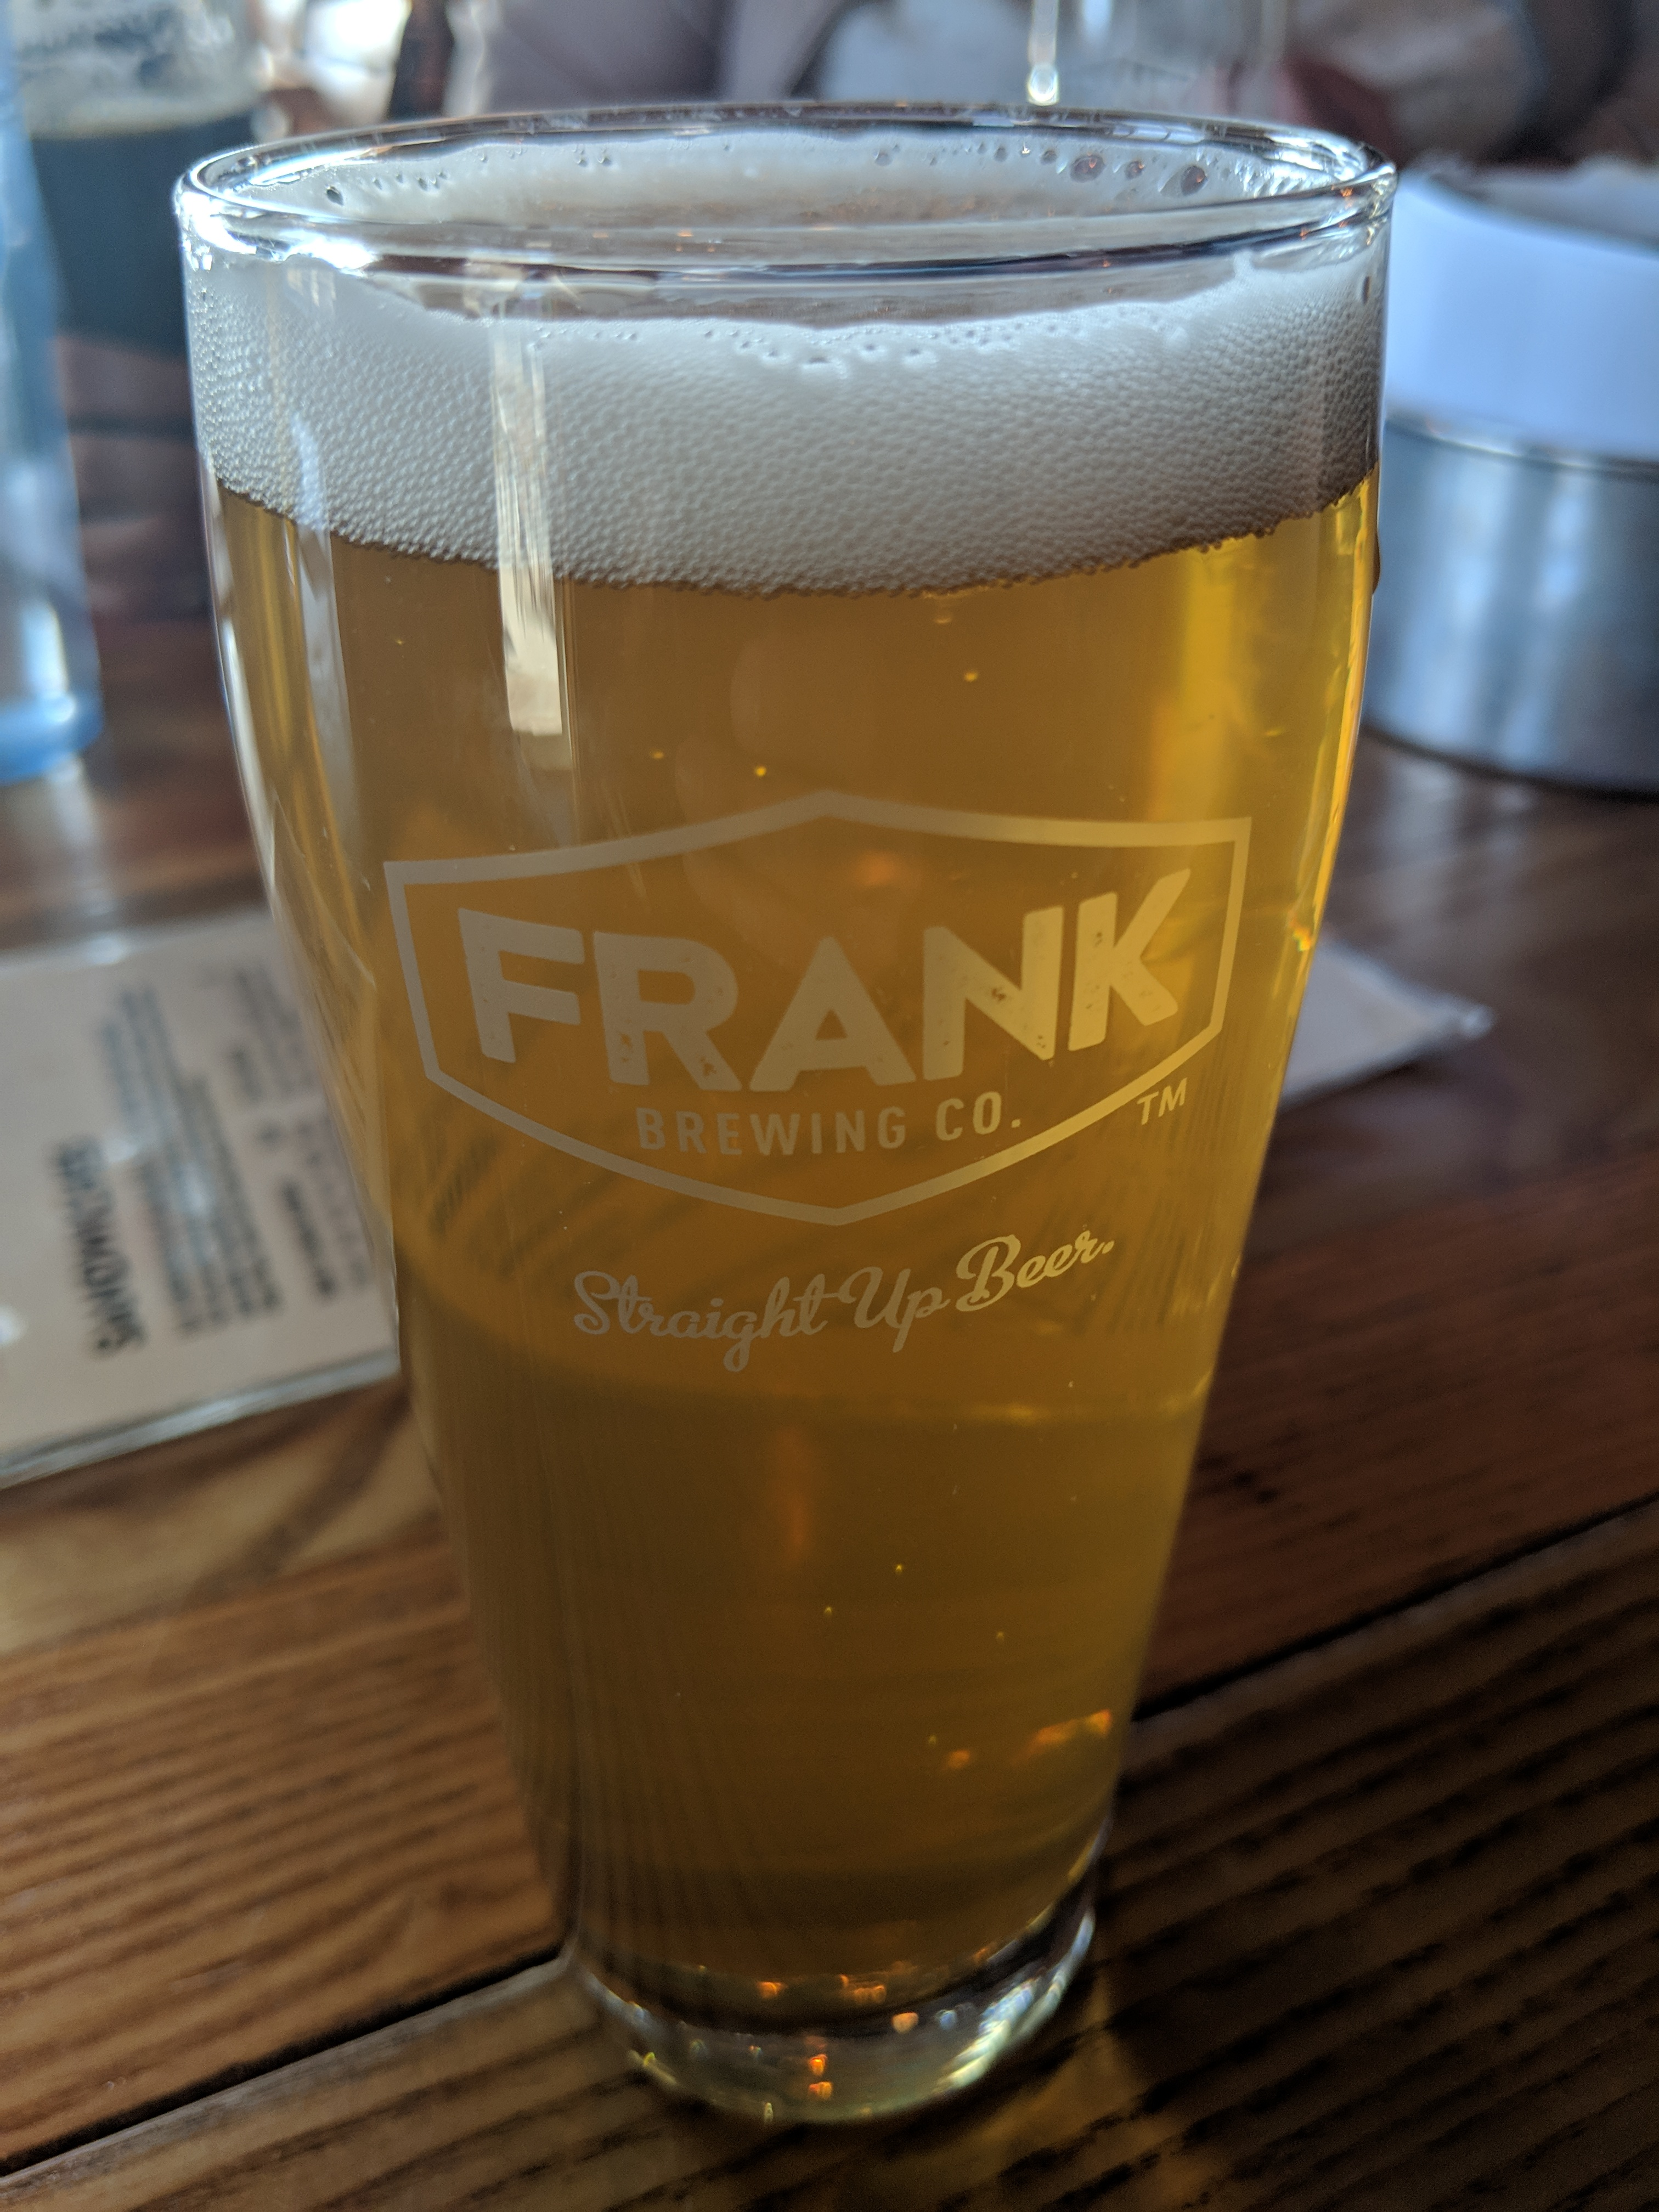 Frank Brewing Co. has released a one-off: The Sasquatch Kolsch.